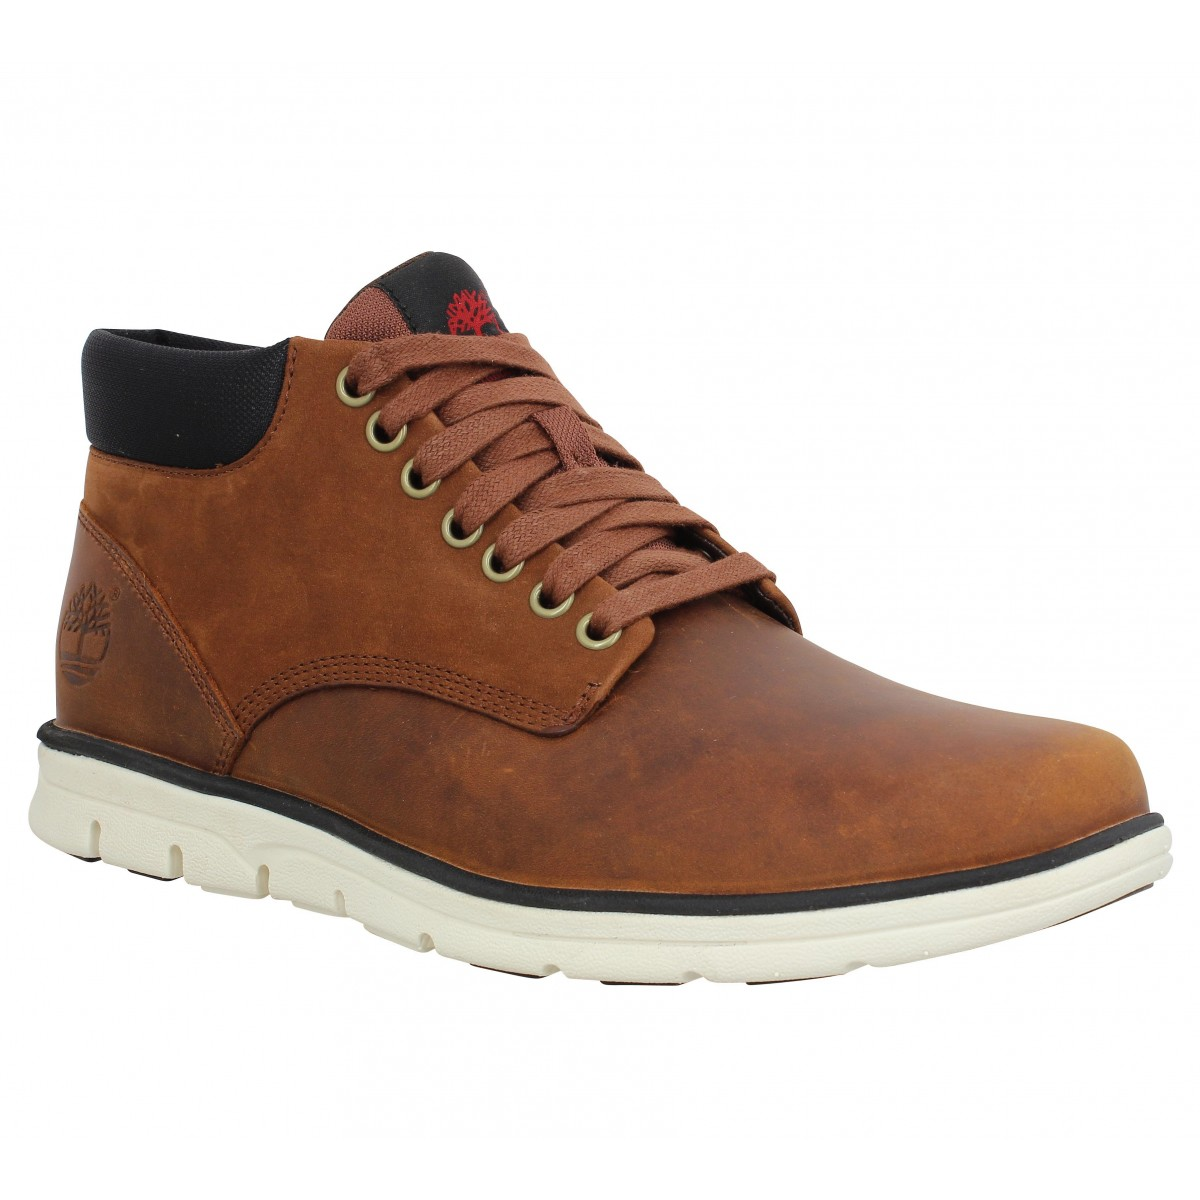 soldes timberland chukka cuir marron homme fanny chaussures. Black Bedroom Furniture Sets. Home Design Ideas